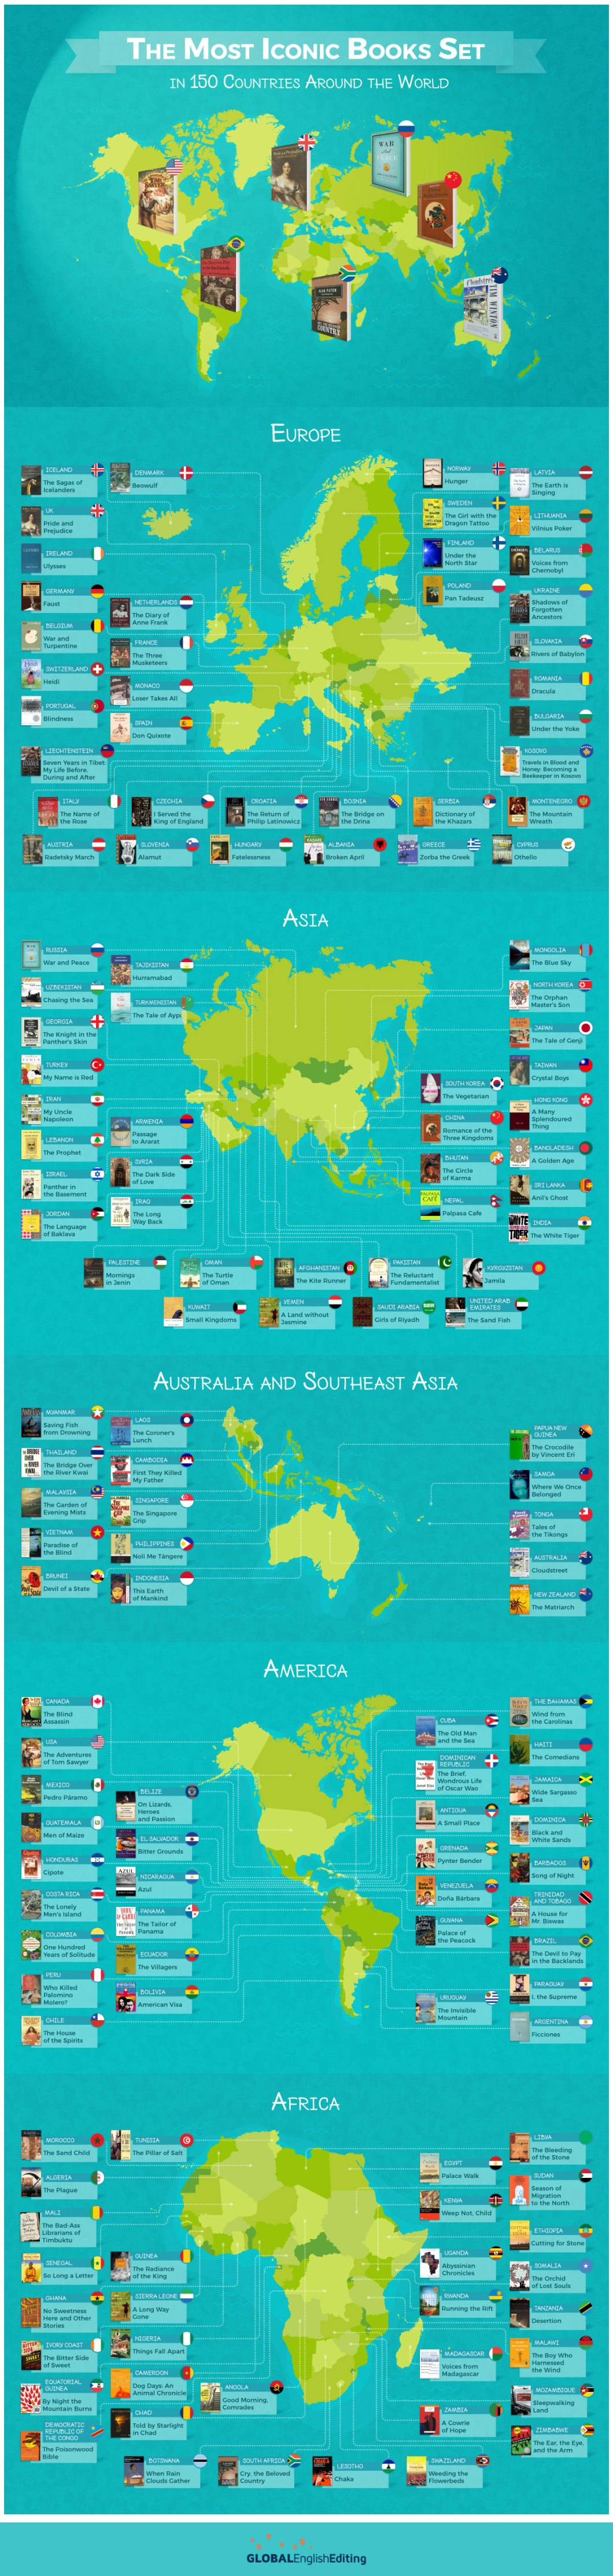 World's Most Iconic Books That Are Memorably Set In 150 Countries - Infographic